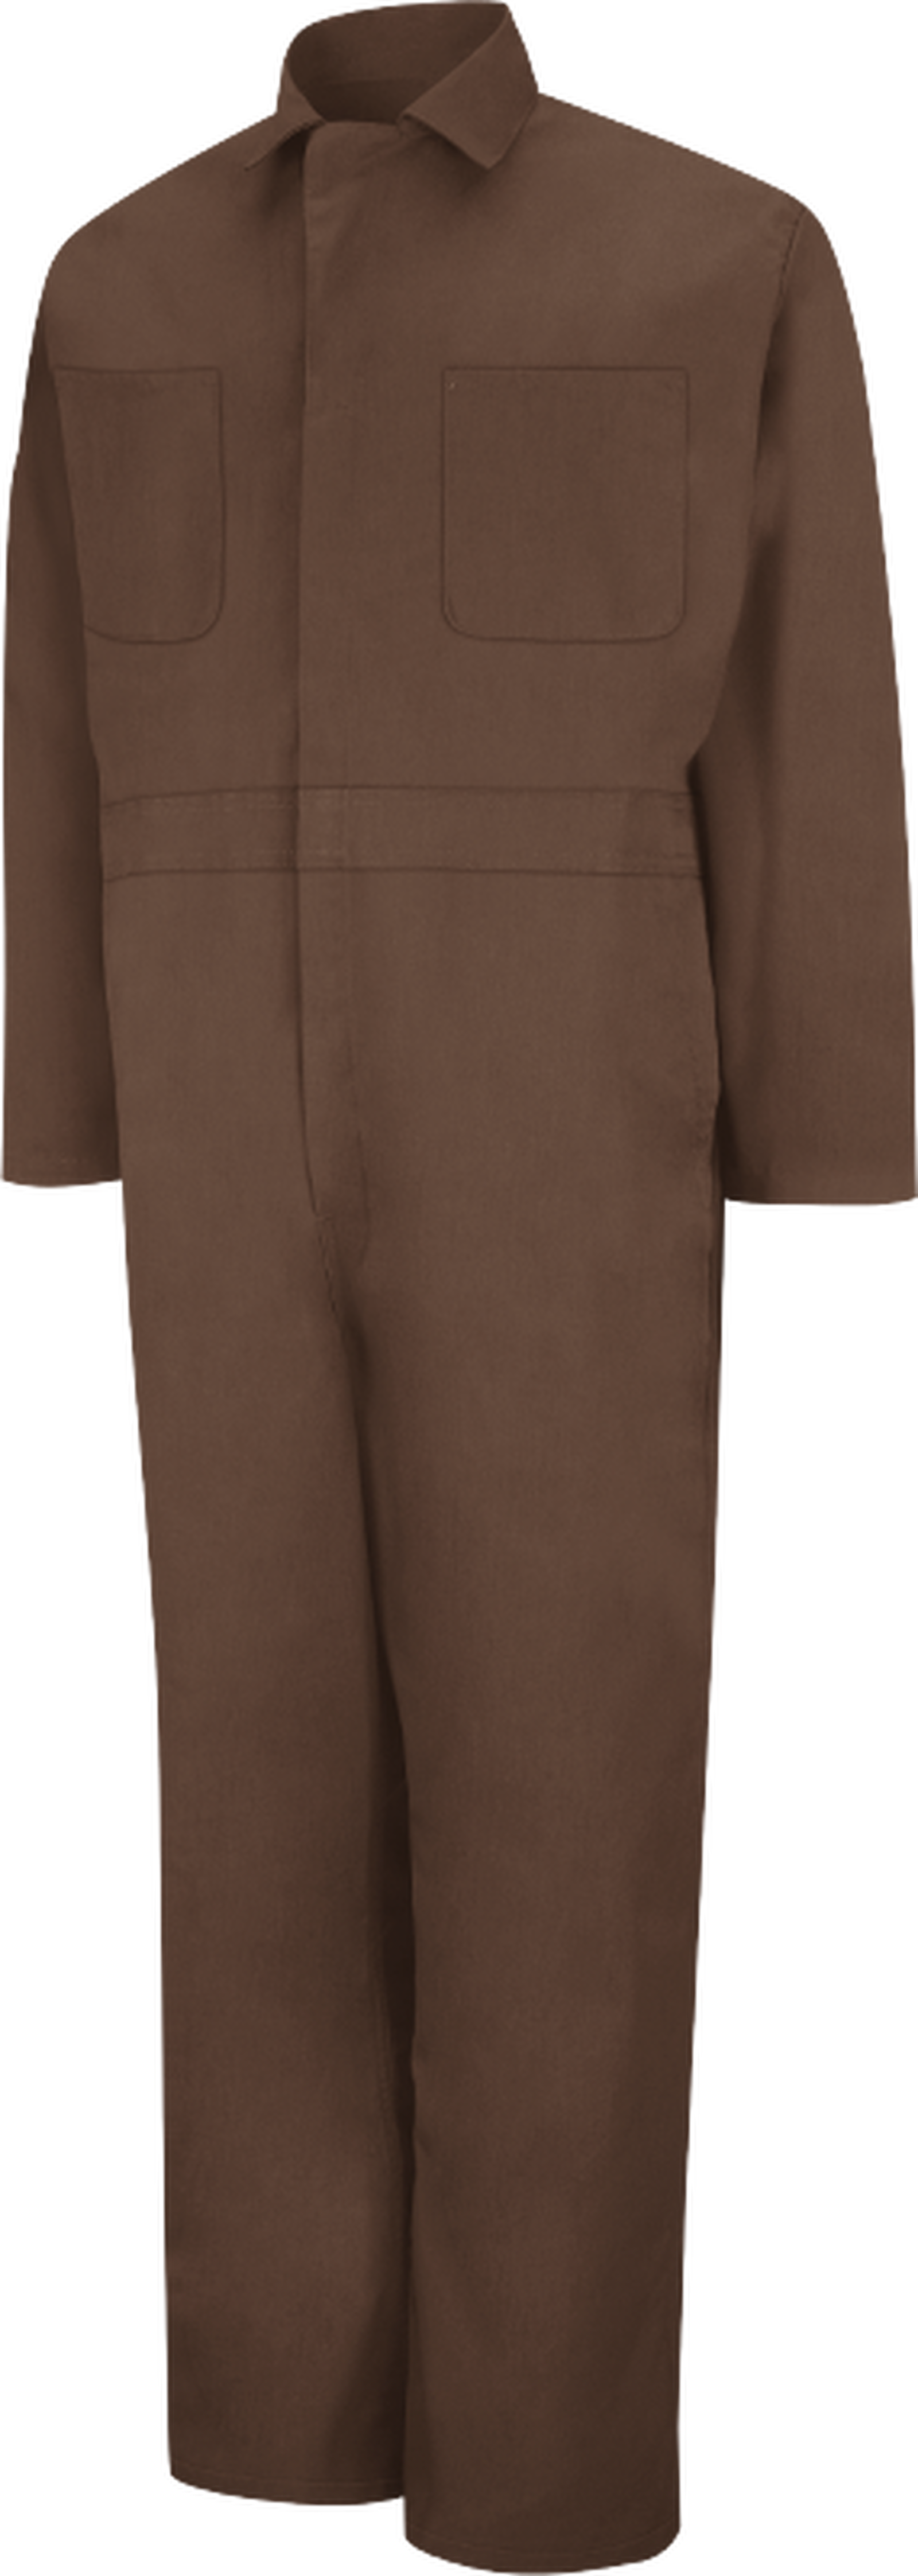 Men's Twill Action Back Coverall with Chest Pockets